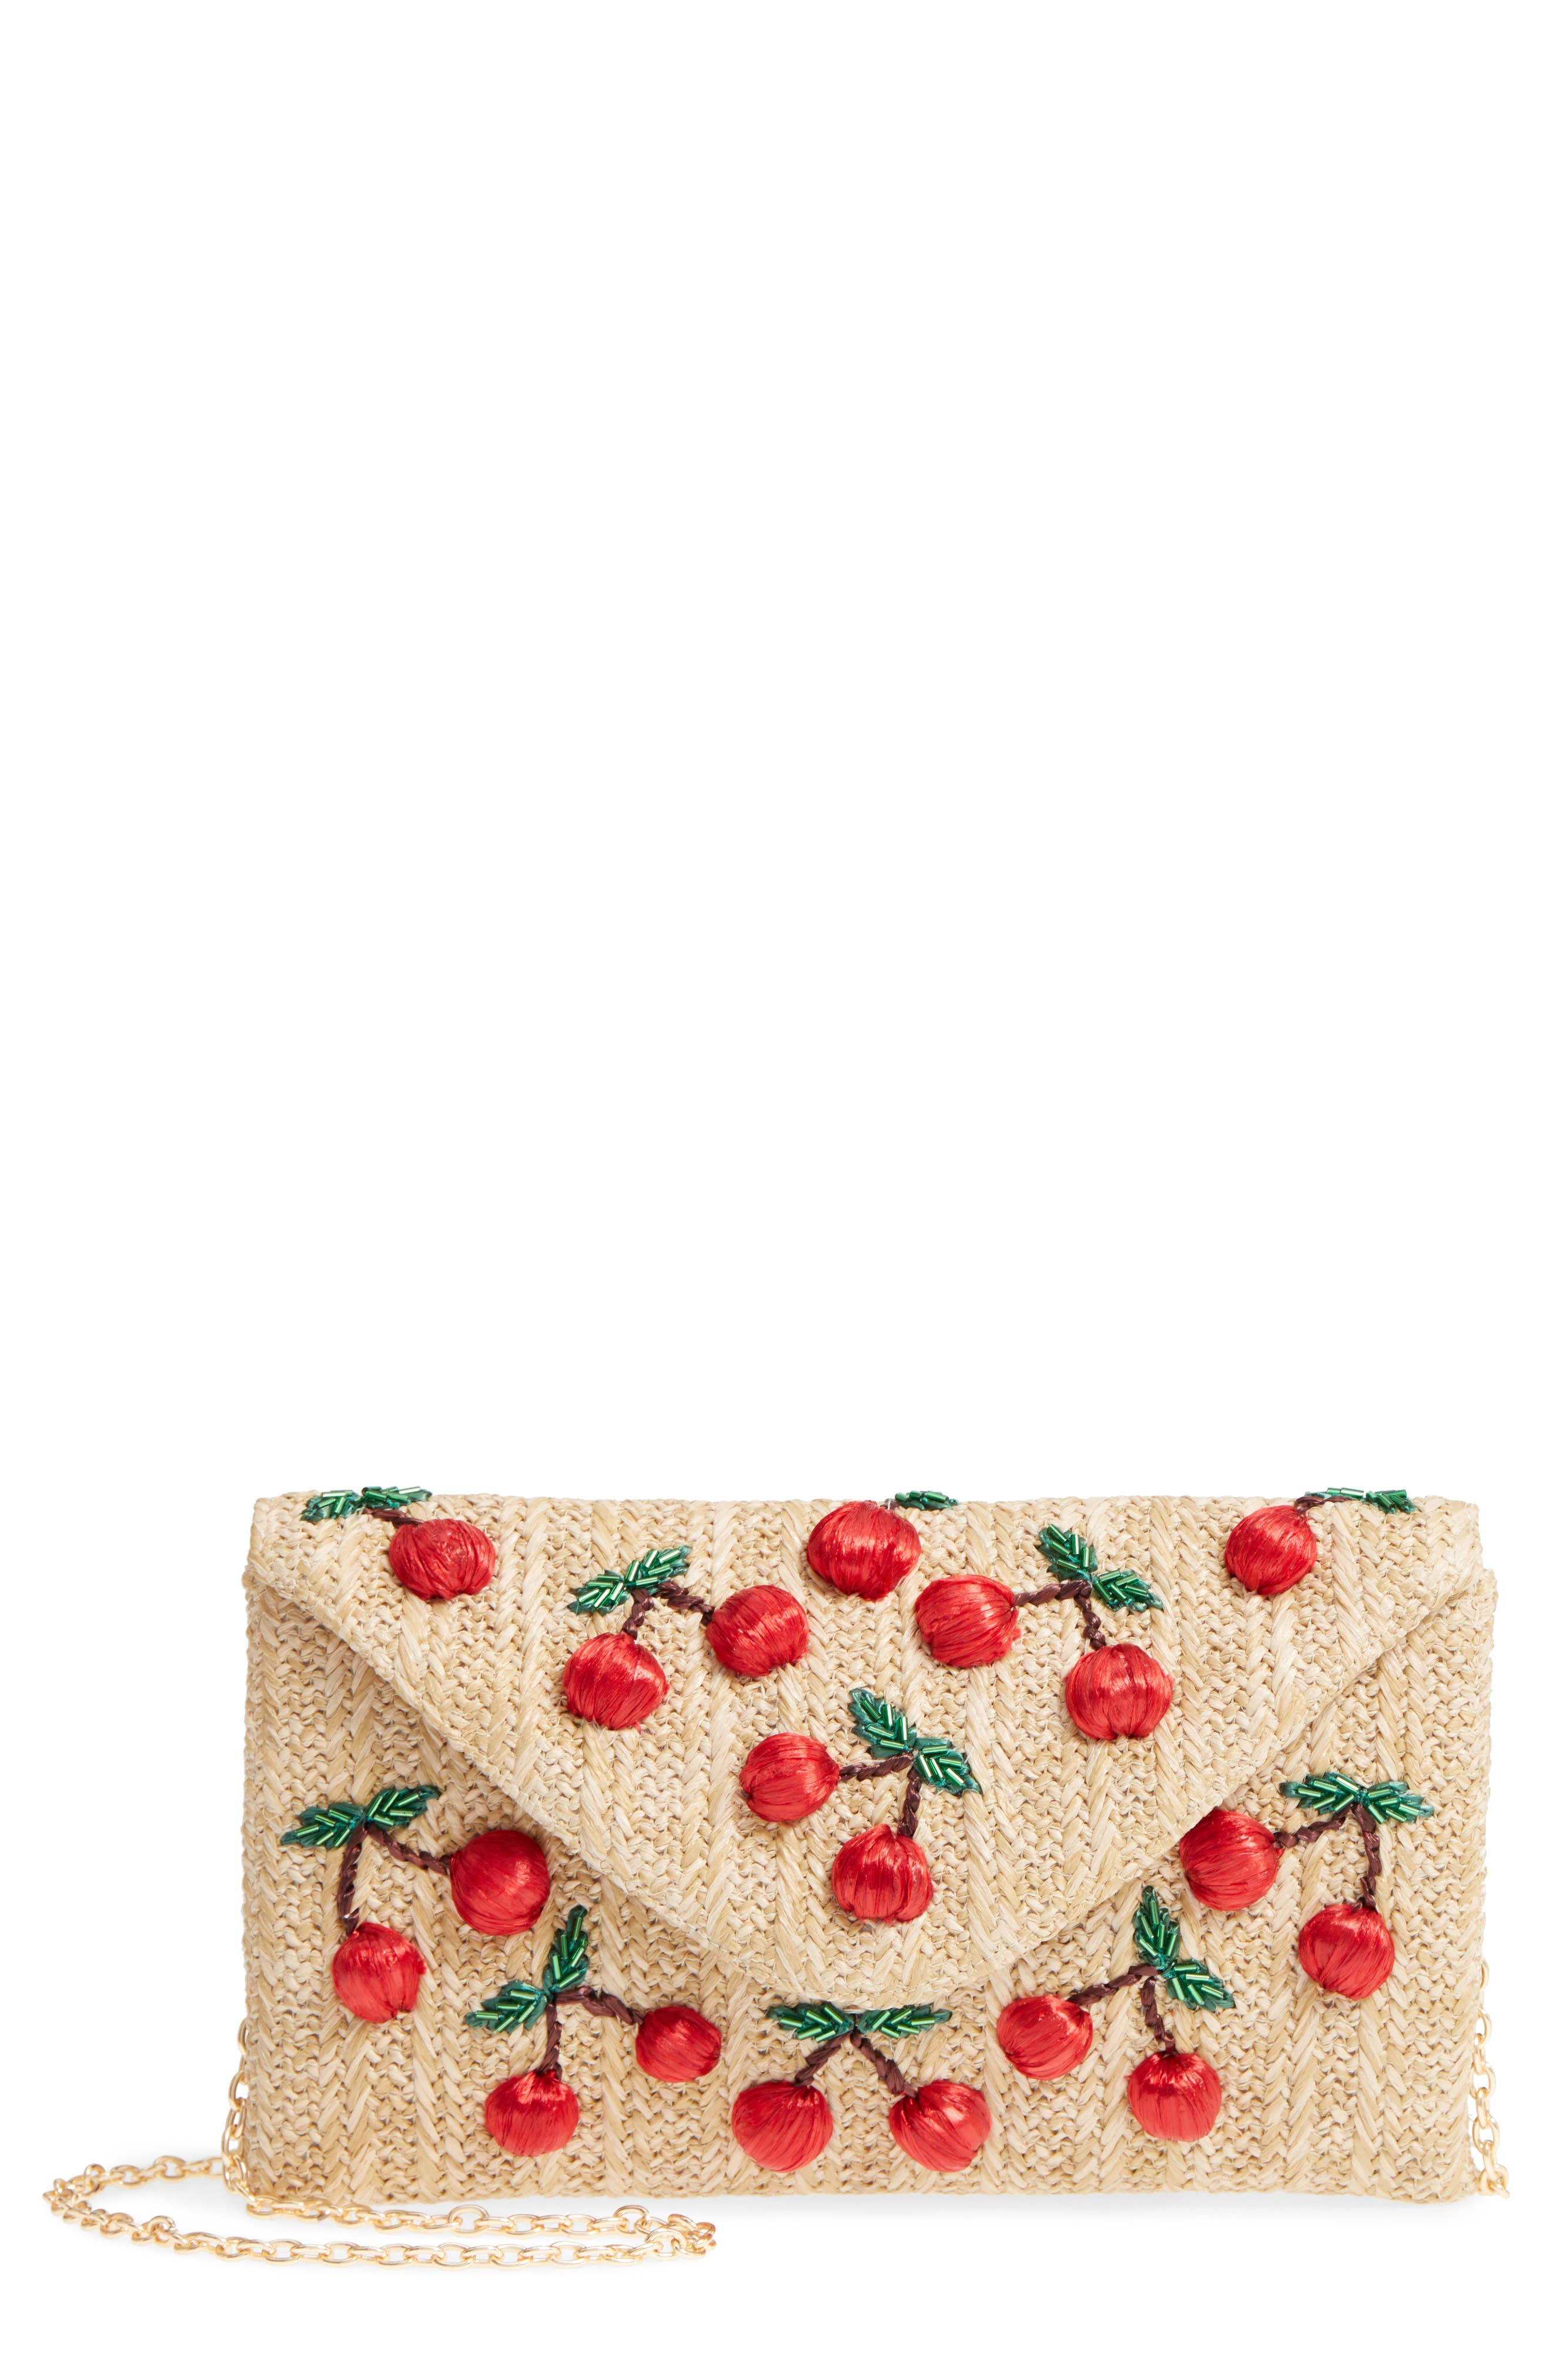 Cherry Embellished Straw Envelope Clutch,                         Main,                         color, 235